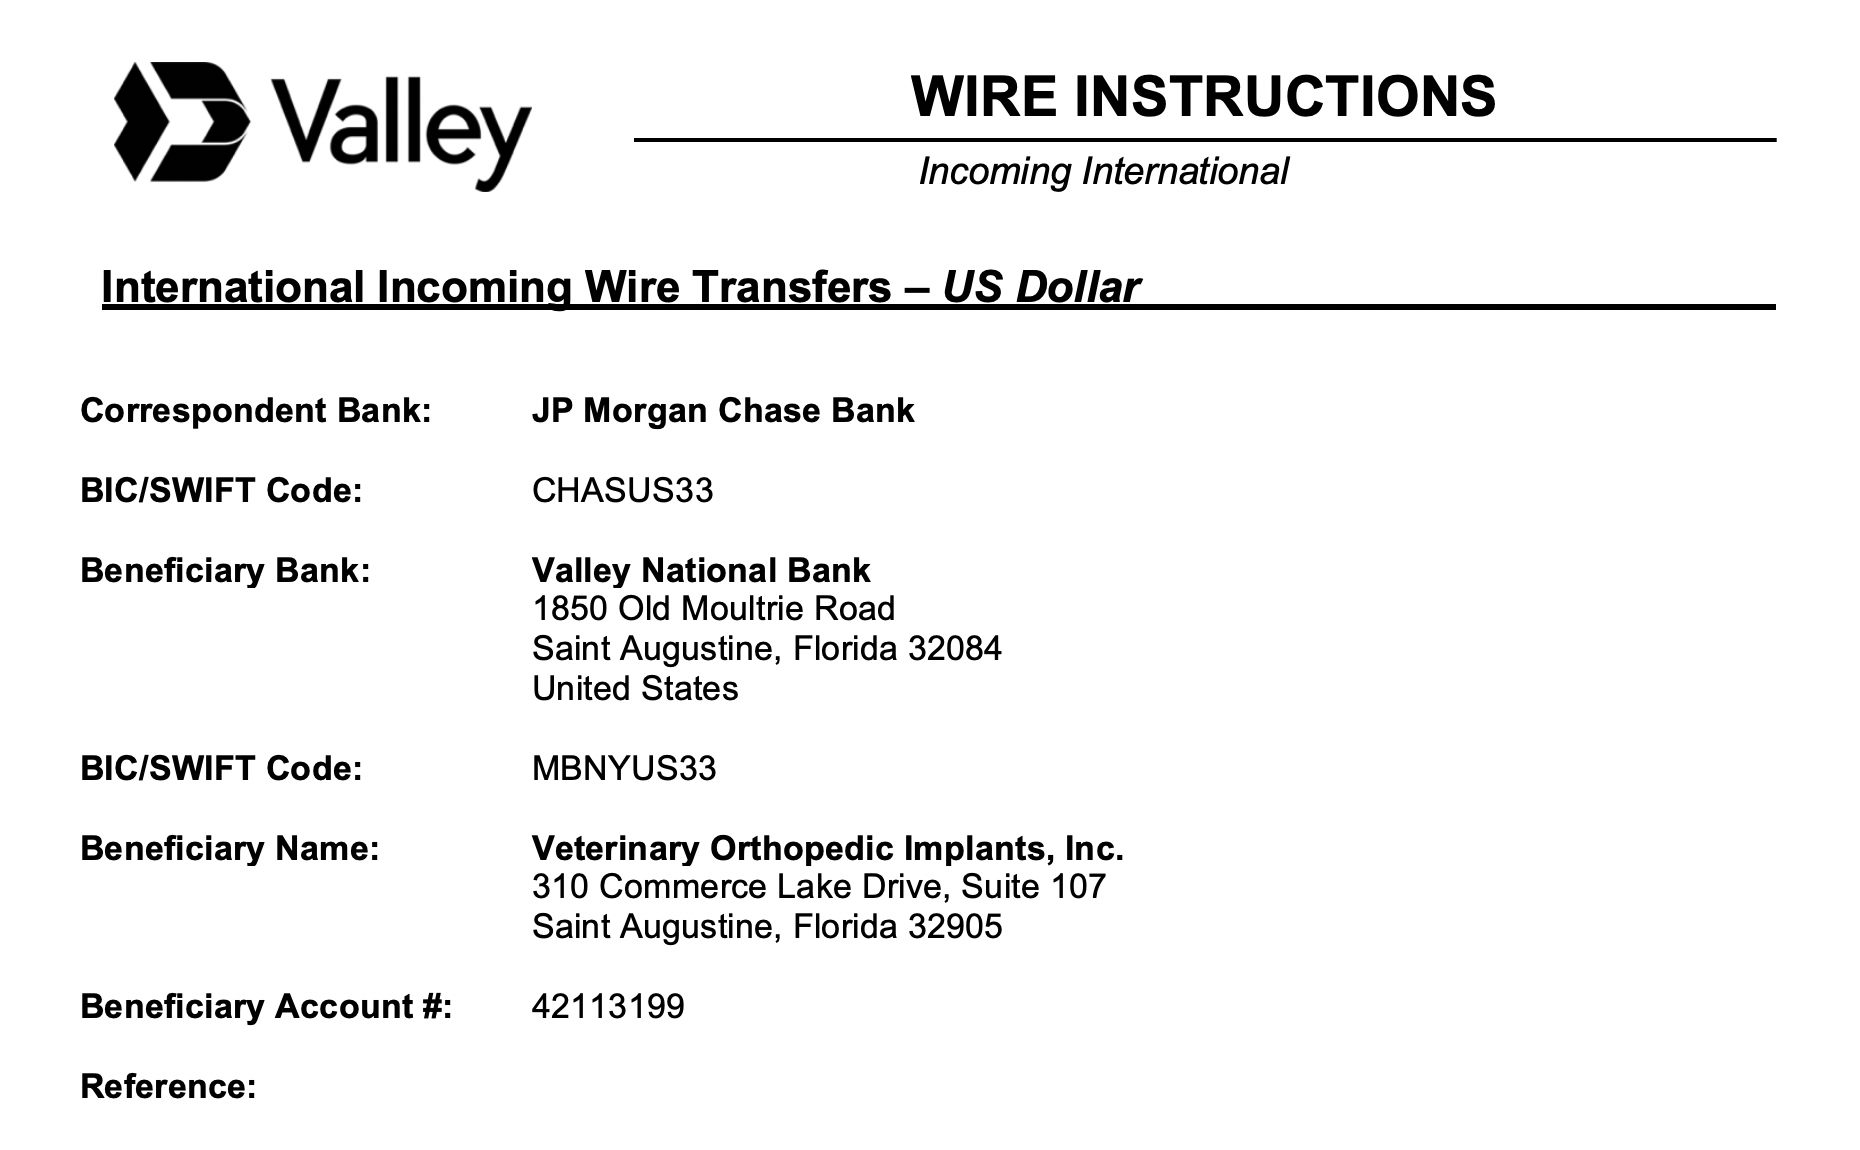 domestic-wire-instructions.png